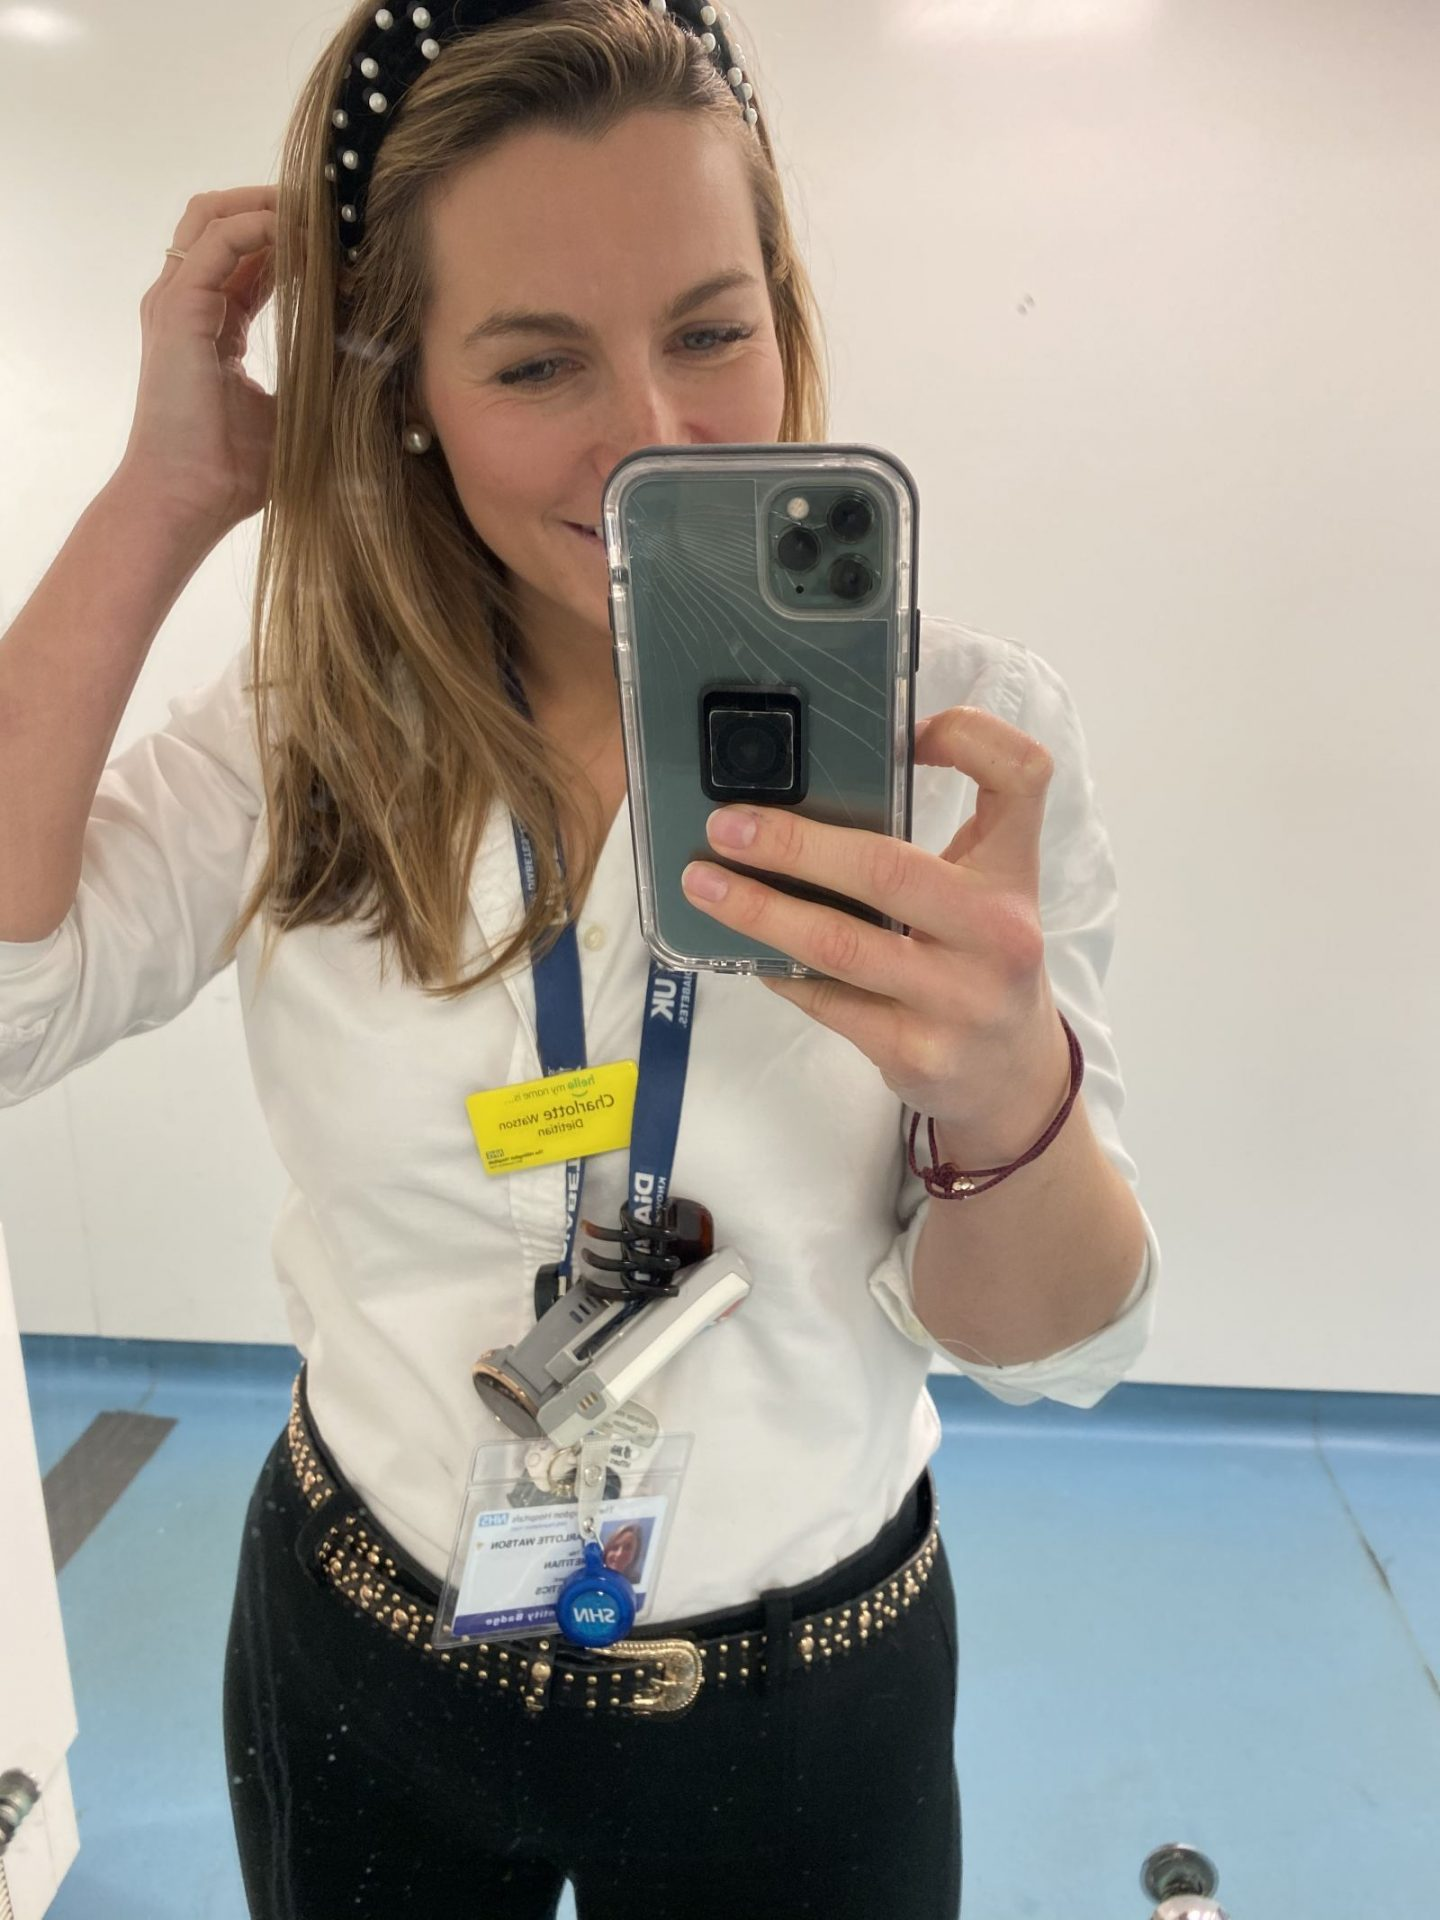 Working as a Band 5 NHS Dietitian